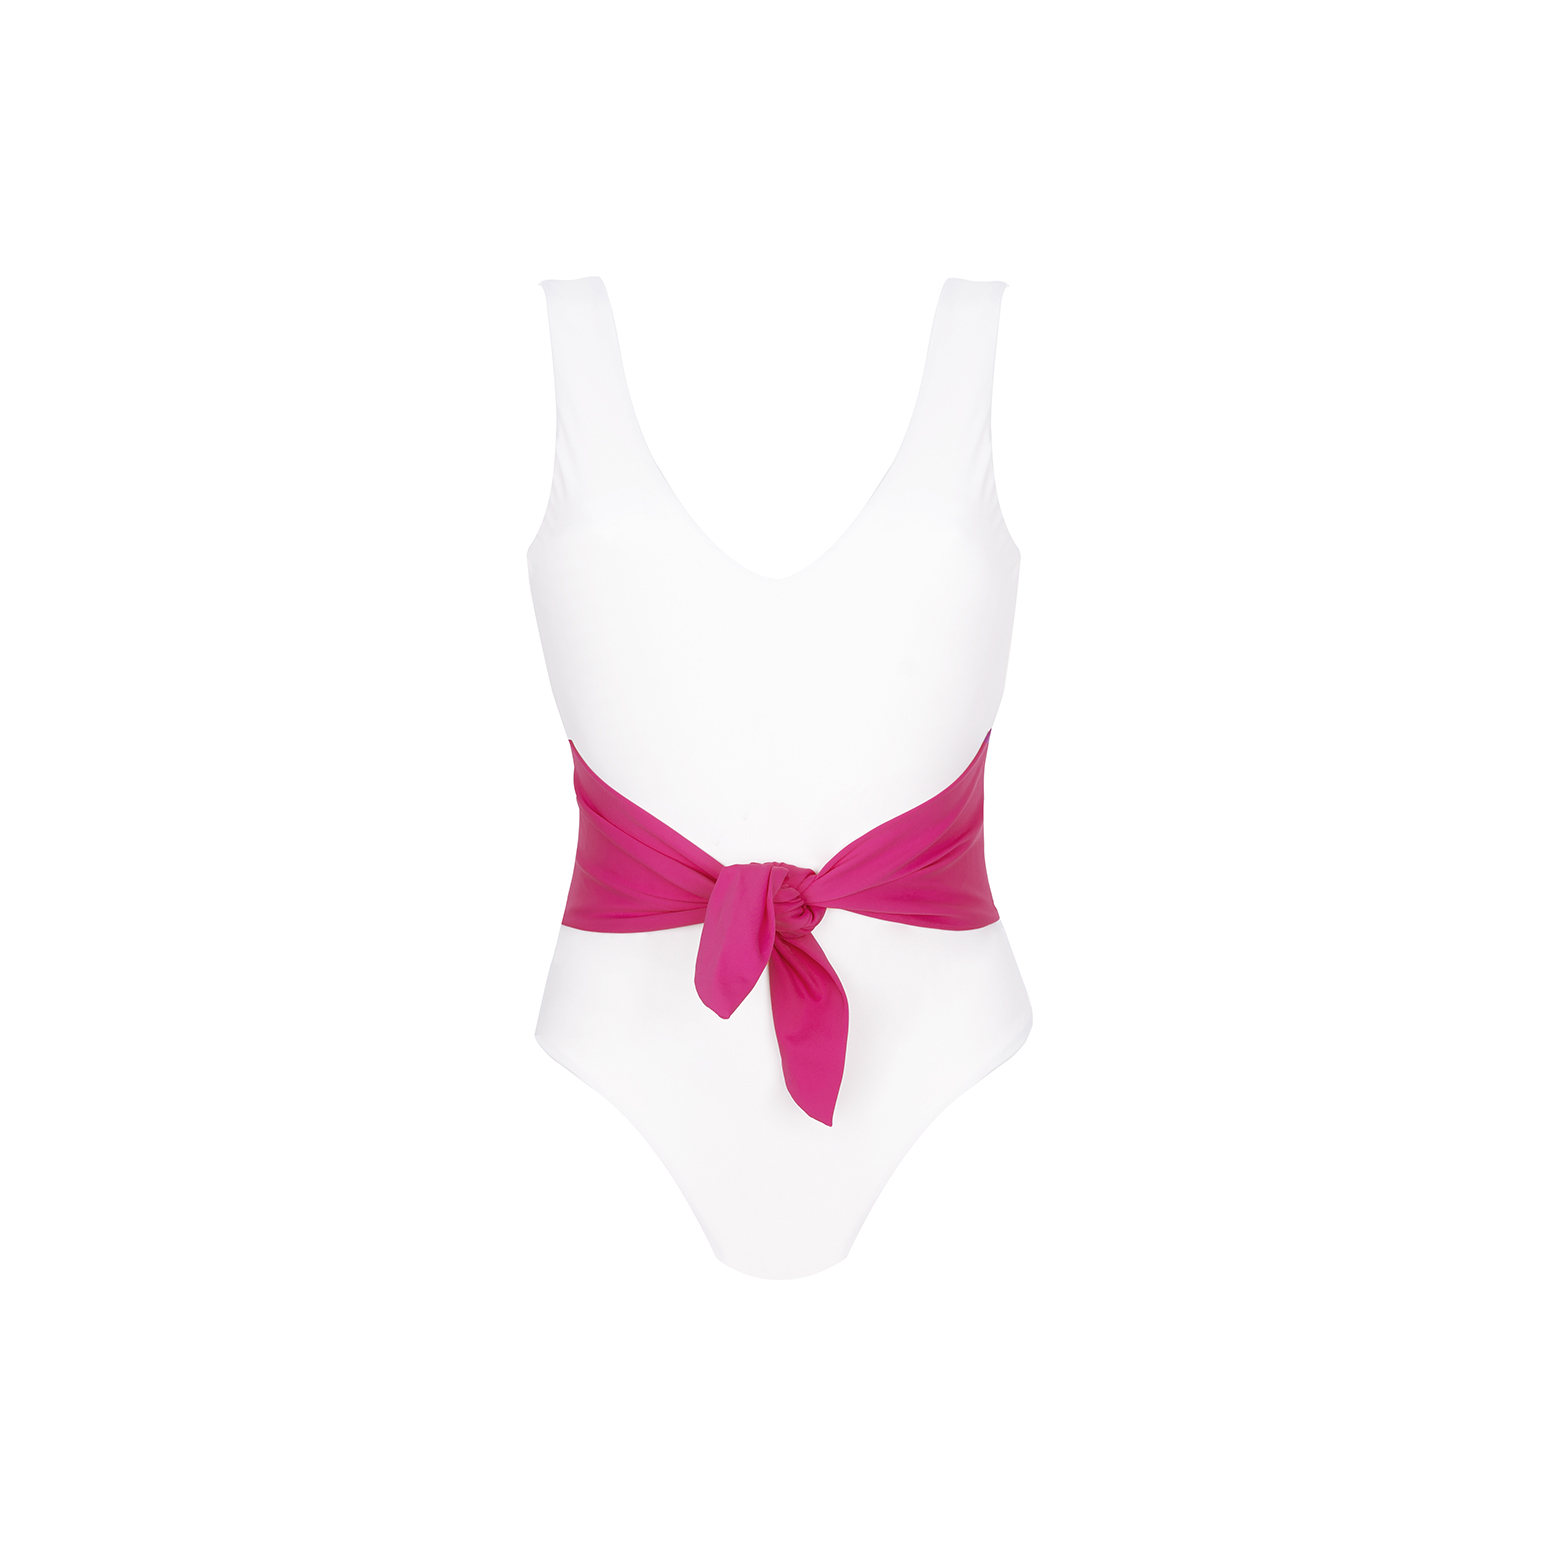 Linda Raff Collection -ONE-PIECE BELT ECO AVORIO & MAGENTA